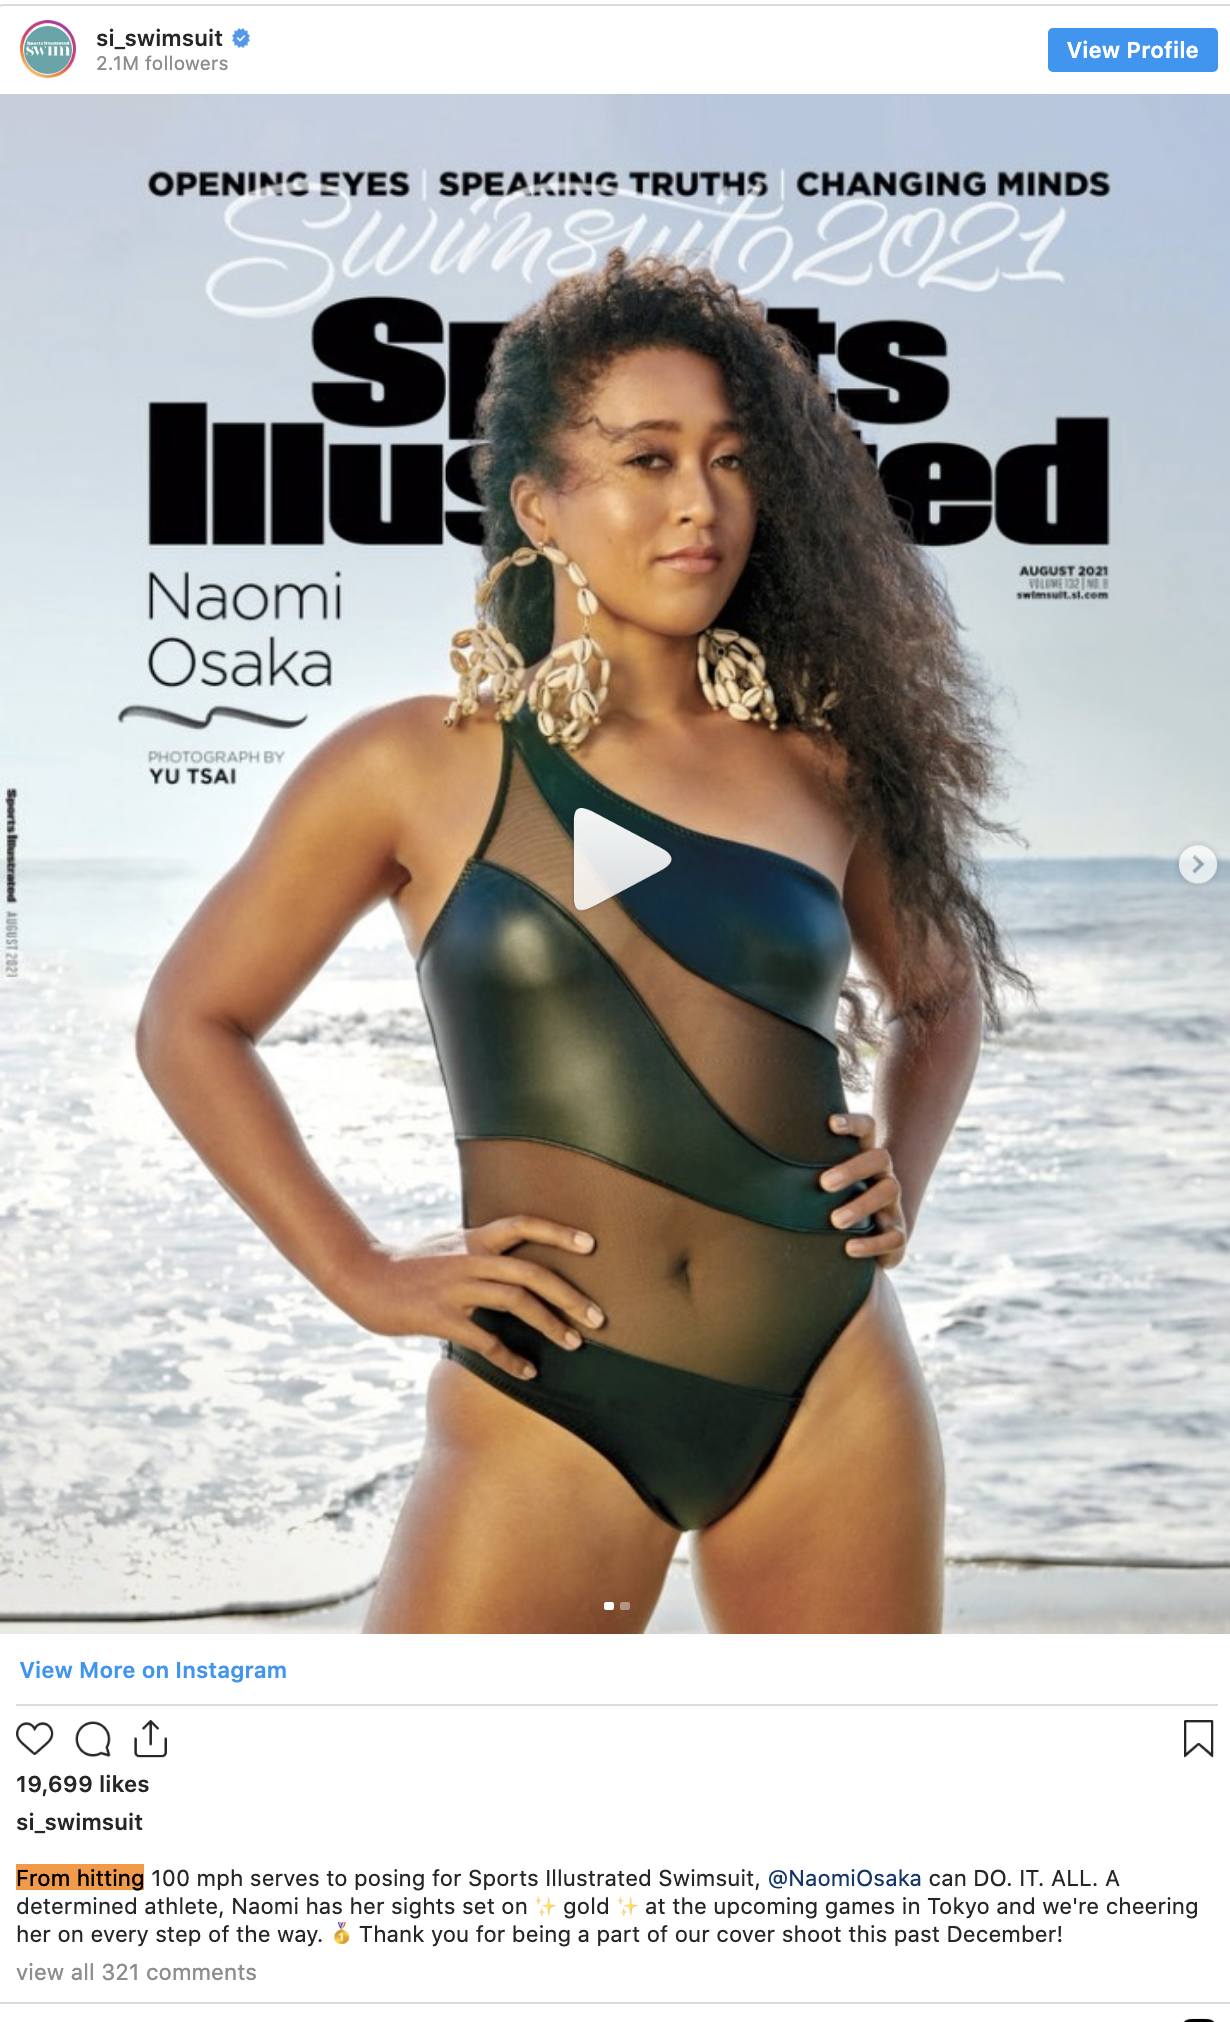 Screen-Shot-2021-07-20-at-11.21.33-AM Naomi Osaka Aces Disgraced Megyn Kelly Over Petty Online Attack Featured Politics Social Media Sports Top Stories